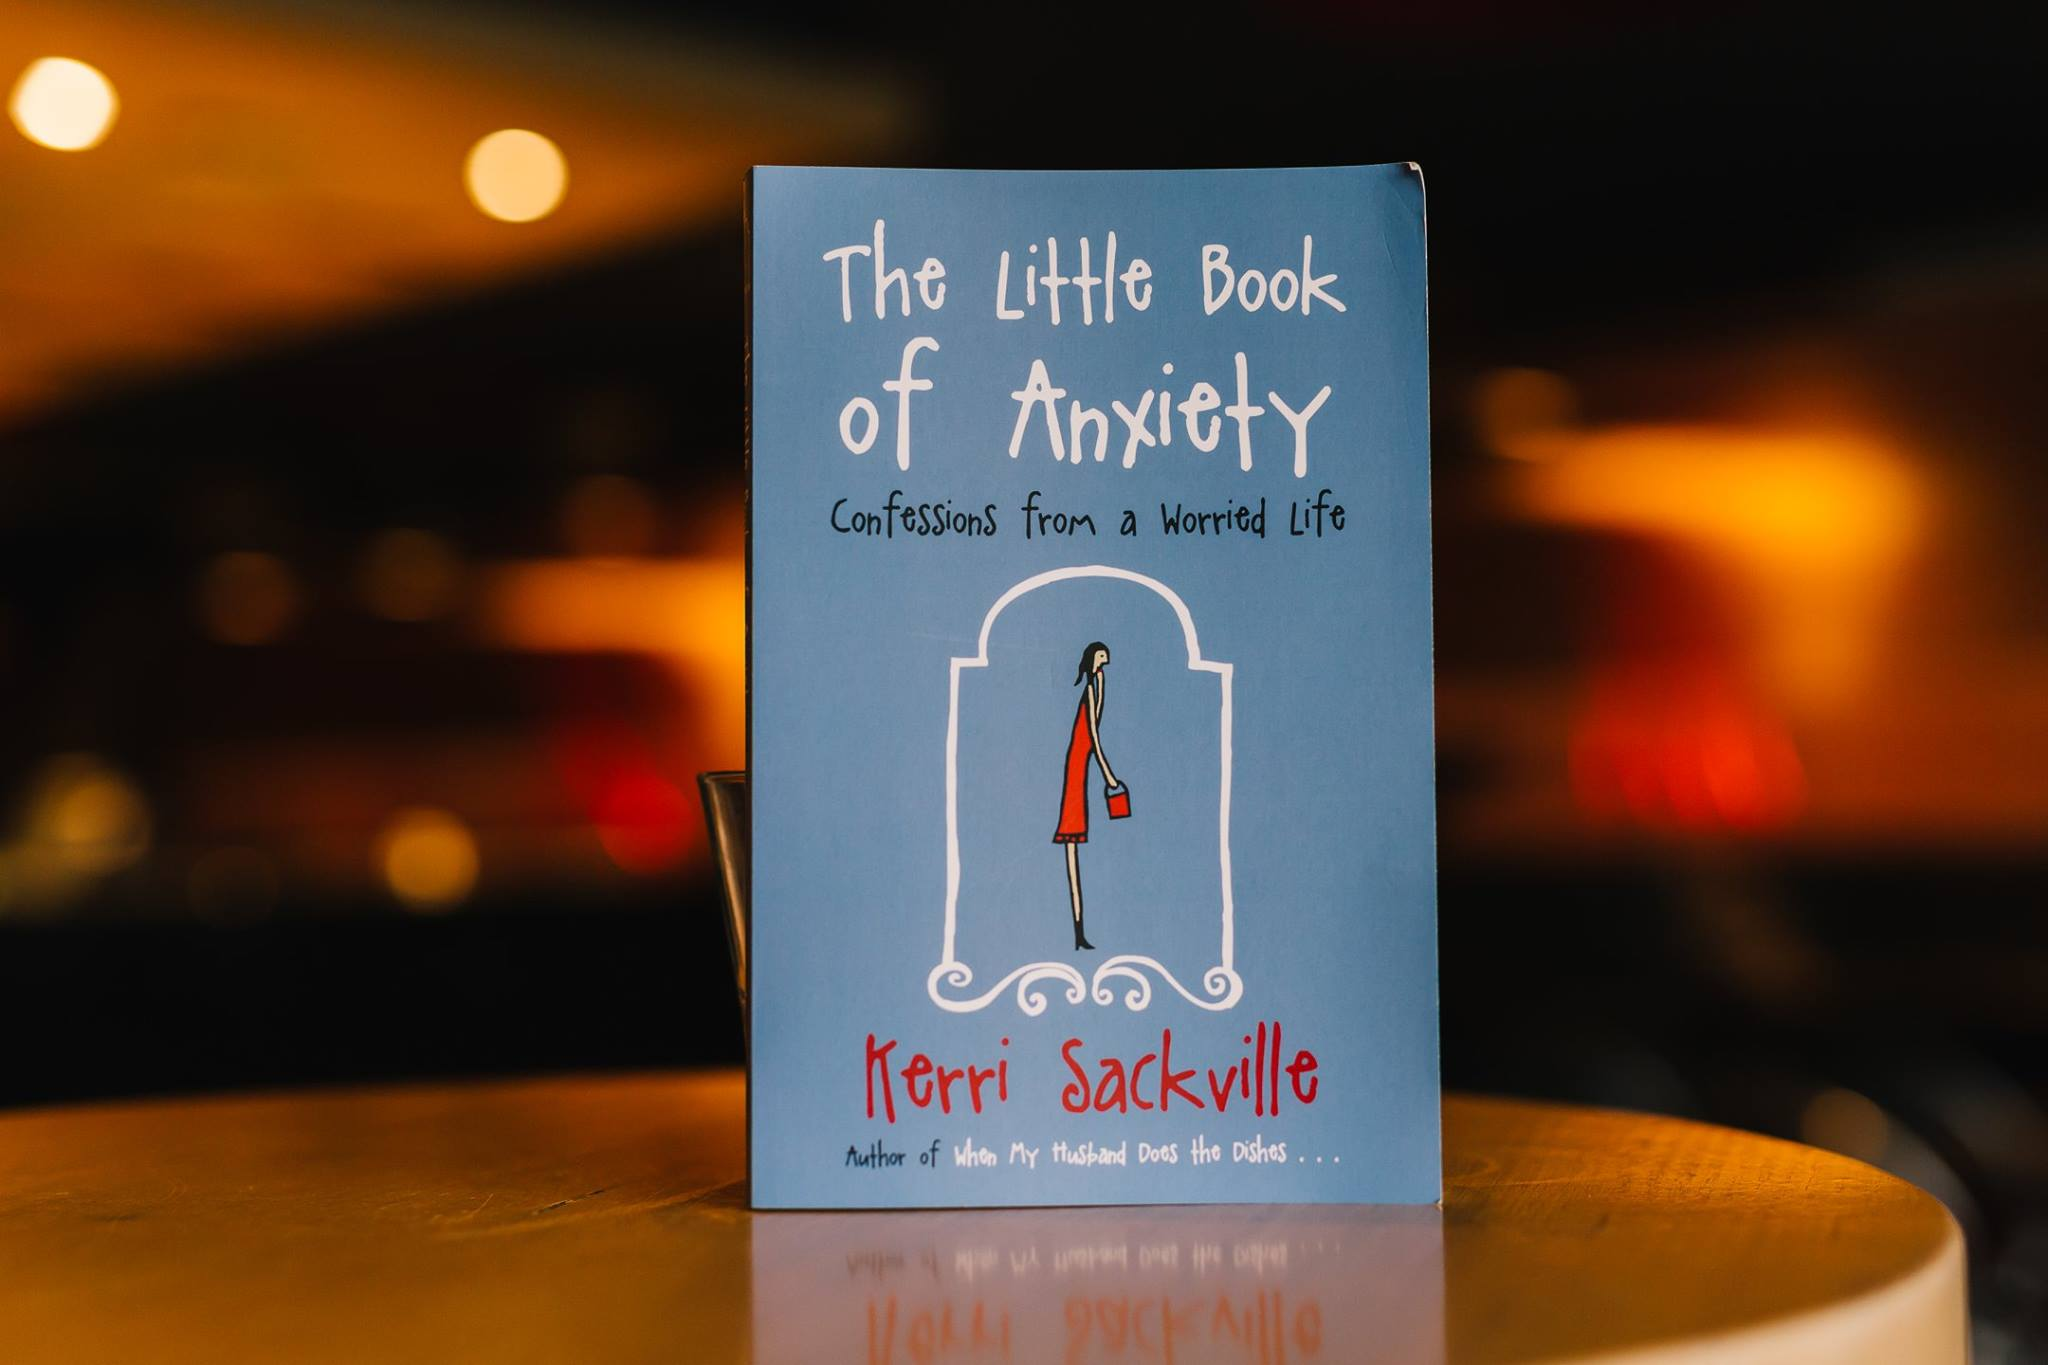 'The Little Book of Anxiety. Confessions from a Worried Life' by Kerri Sackville. Get your copy from Penguin Random House https://penguin.com.au/books/the-little-book-of-anxiety-9781742755366